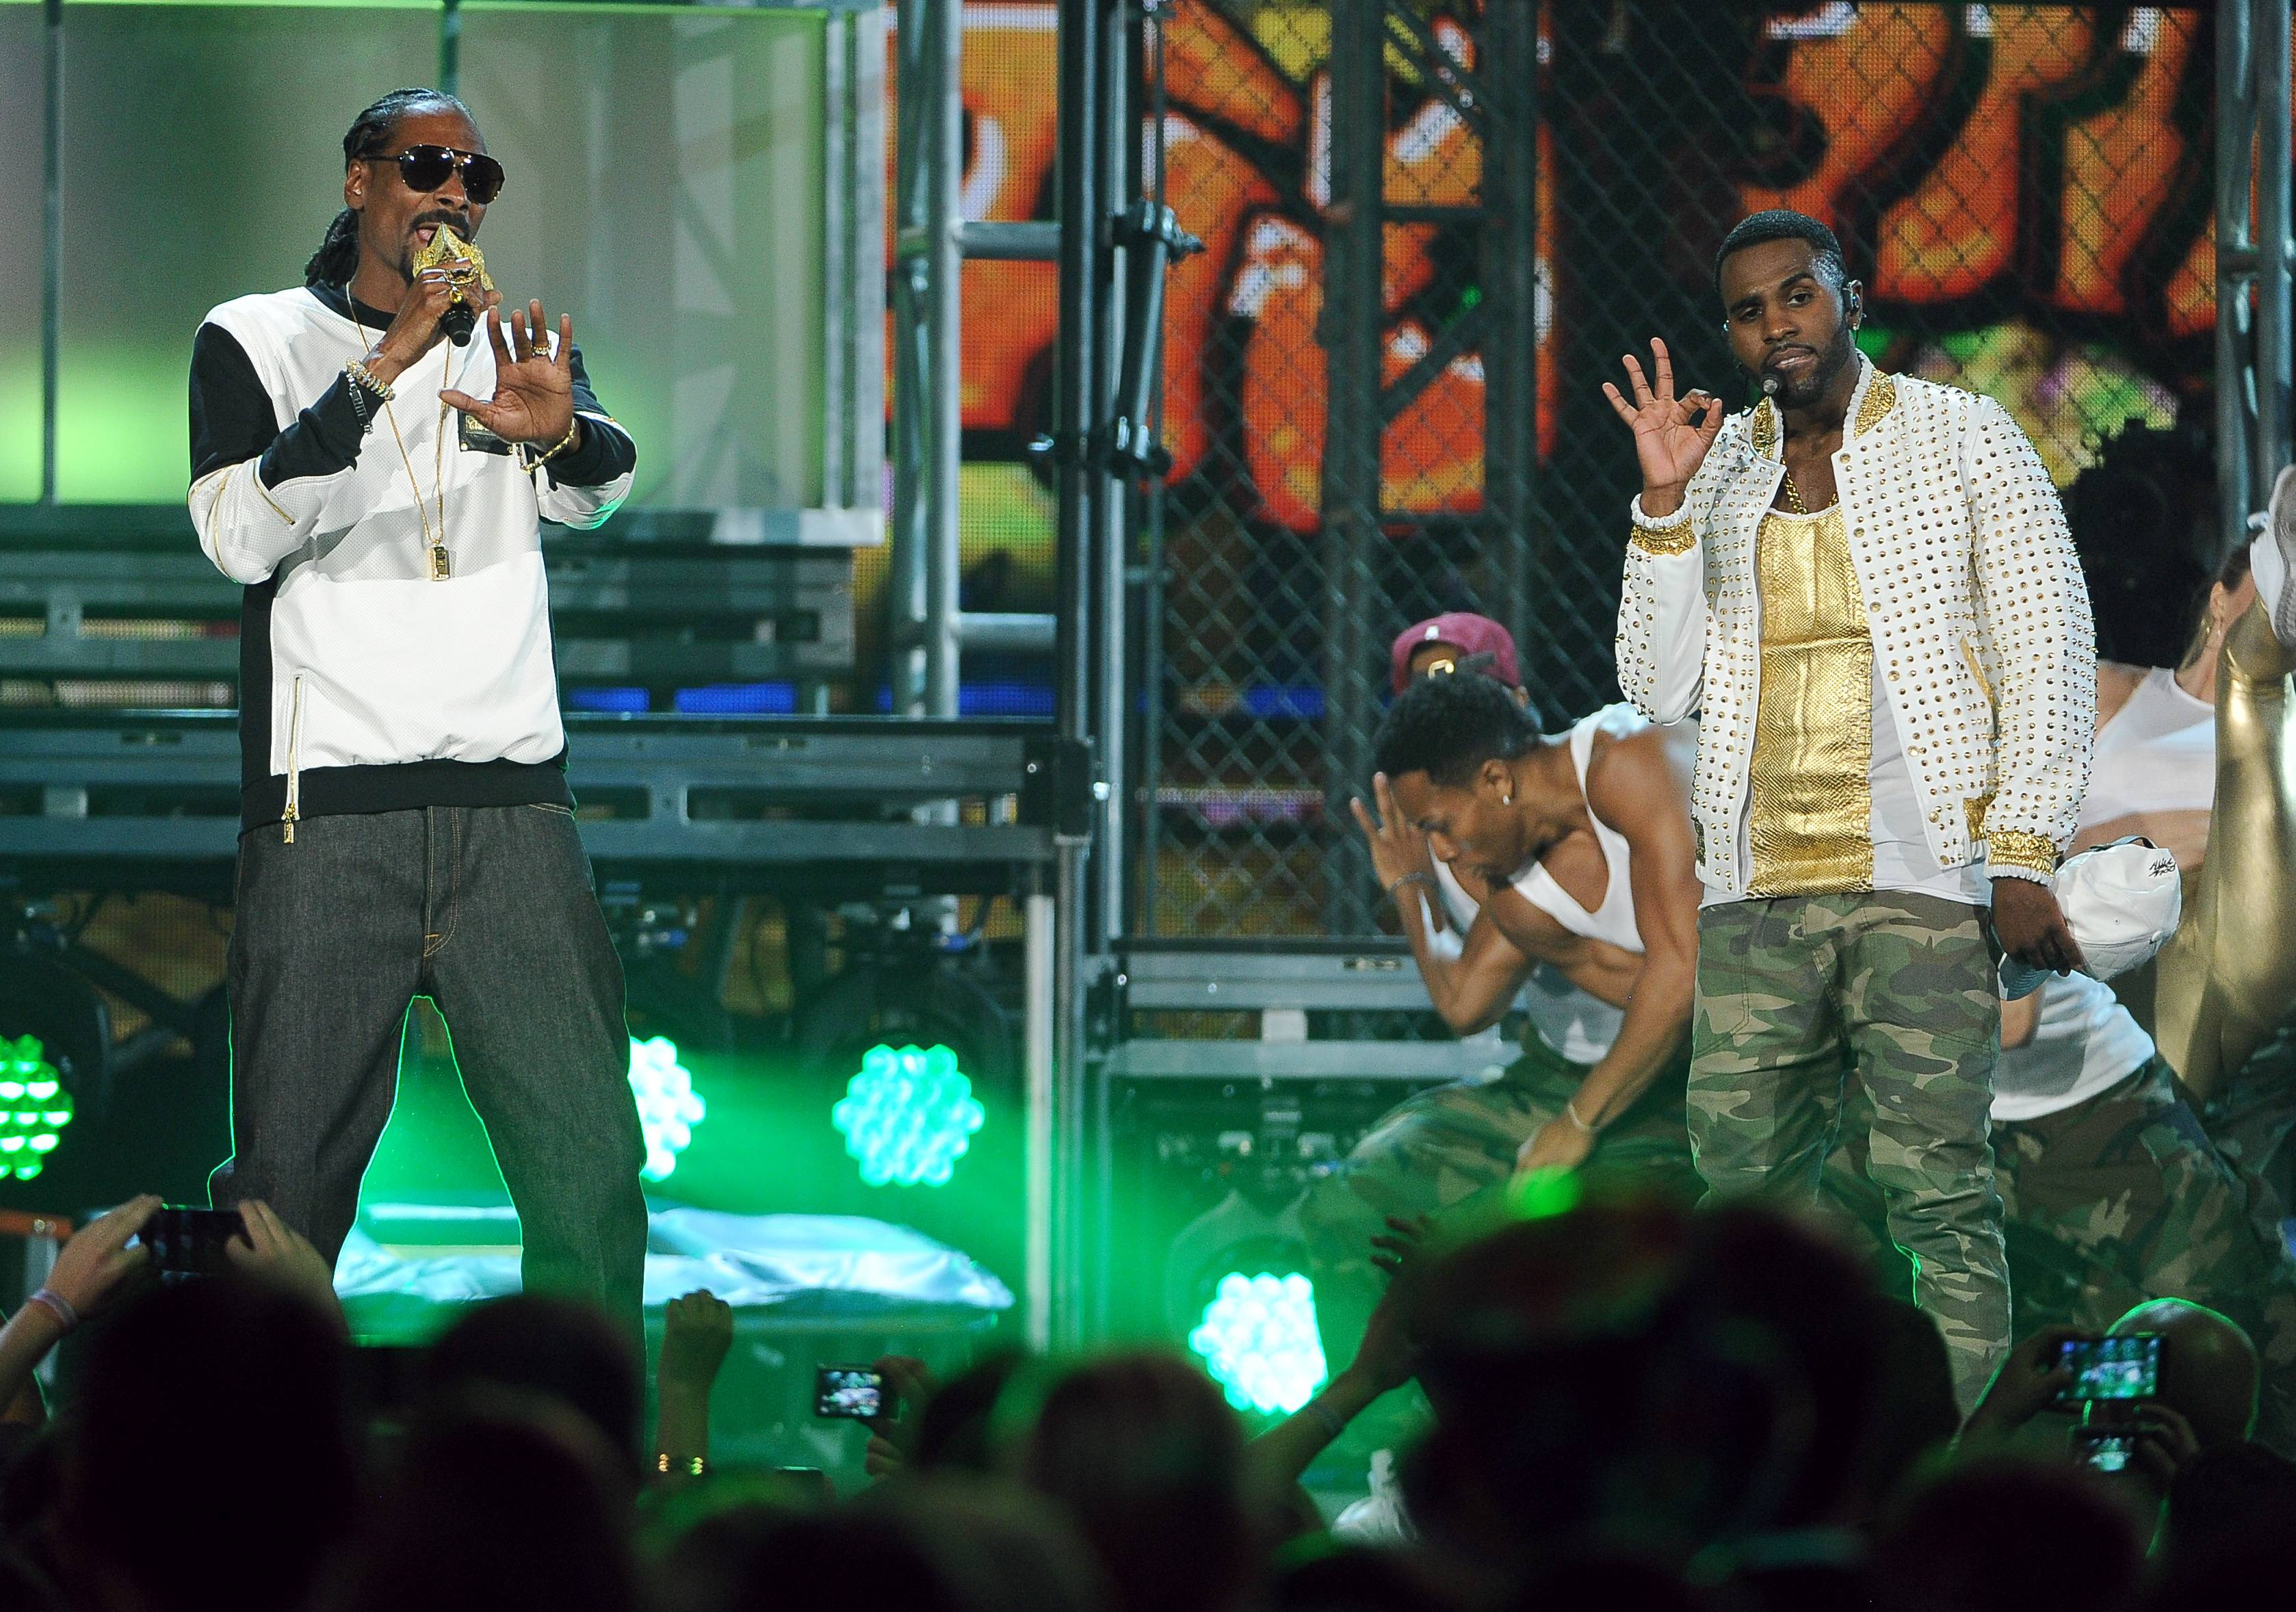 Snoop Dogg, left, and Jason Derulo perform on stage at the Billboard Music Awards at the MGM Grand Garden Arena on Sunday, May 18, 2014, in Las Vegas.